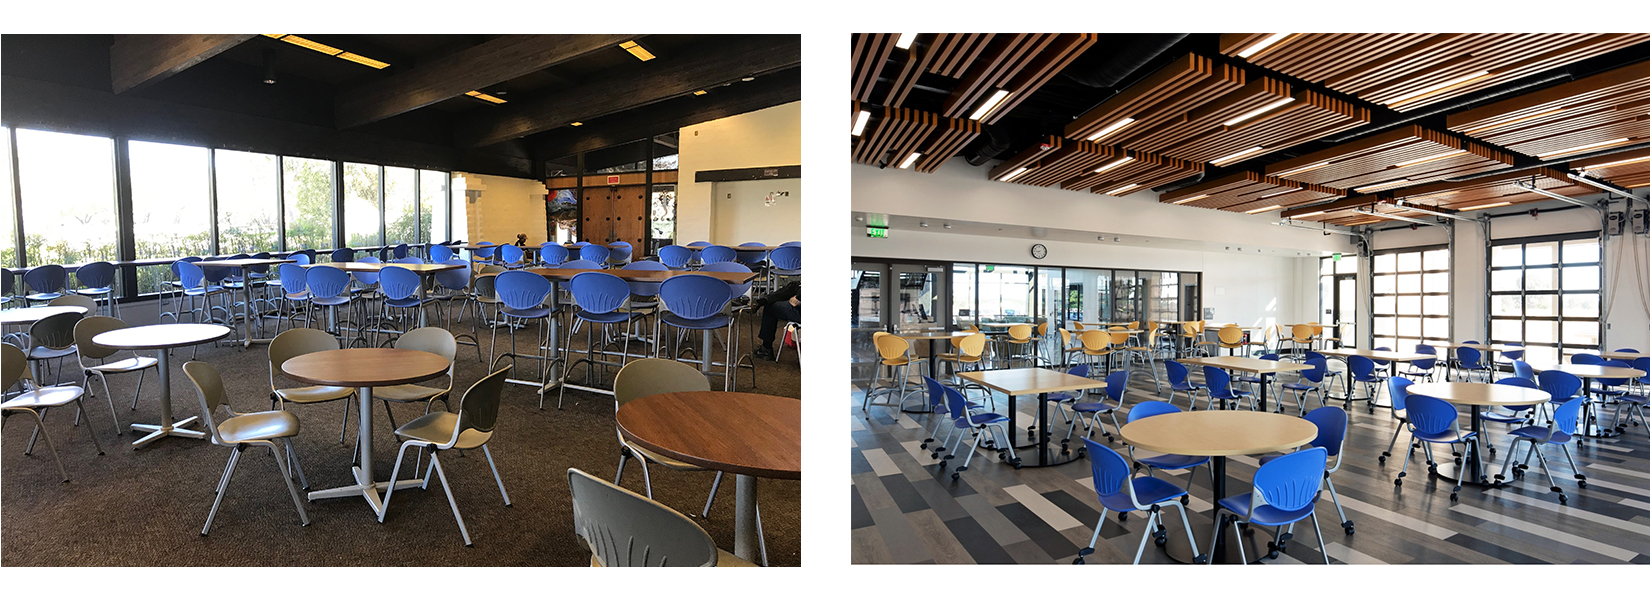 San Luis Obispo and North County campus cafeterias